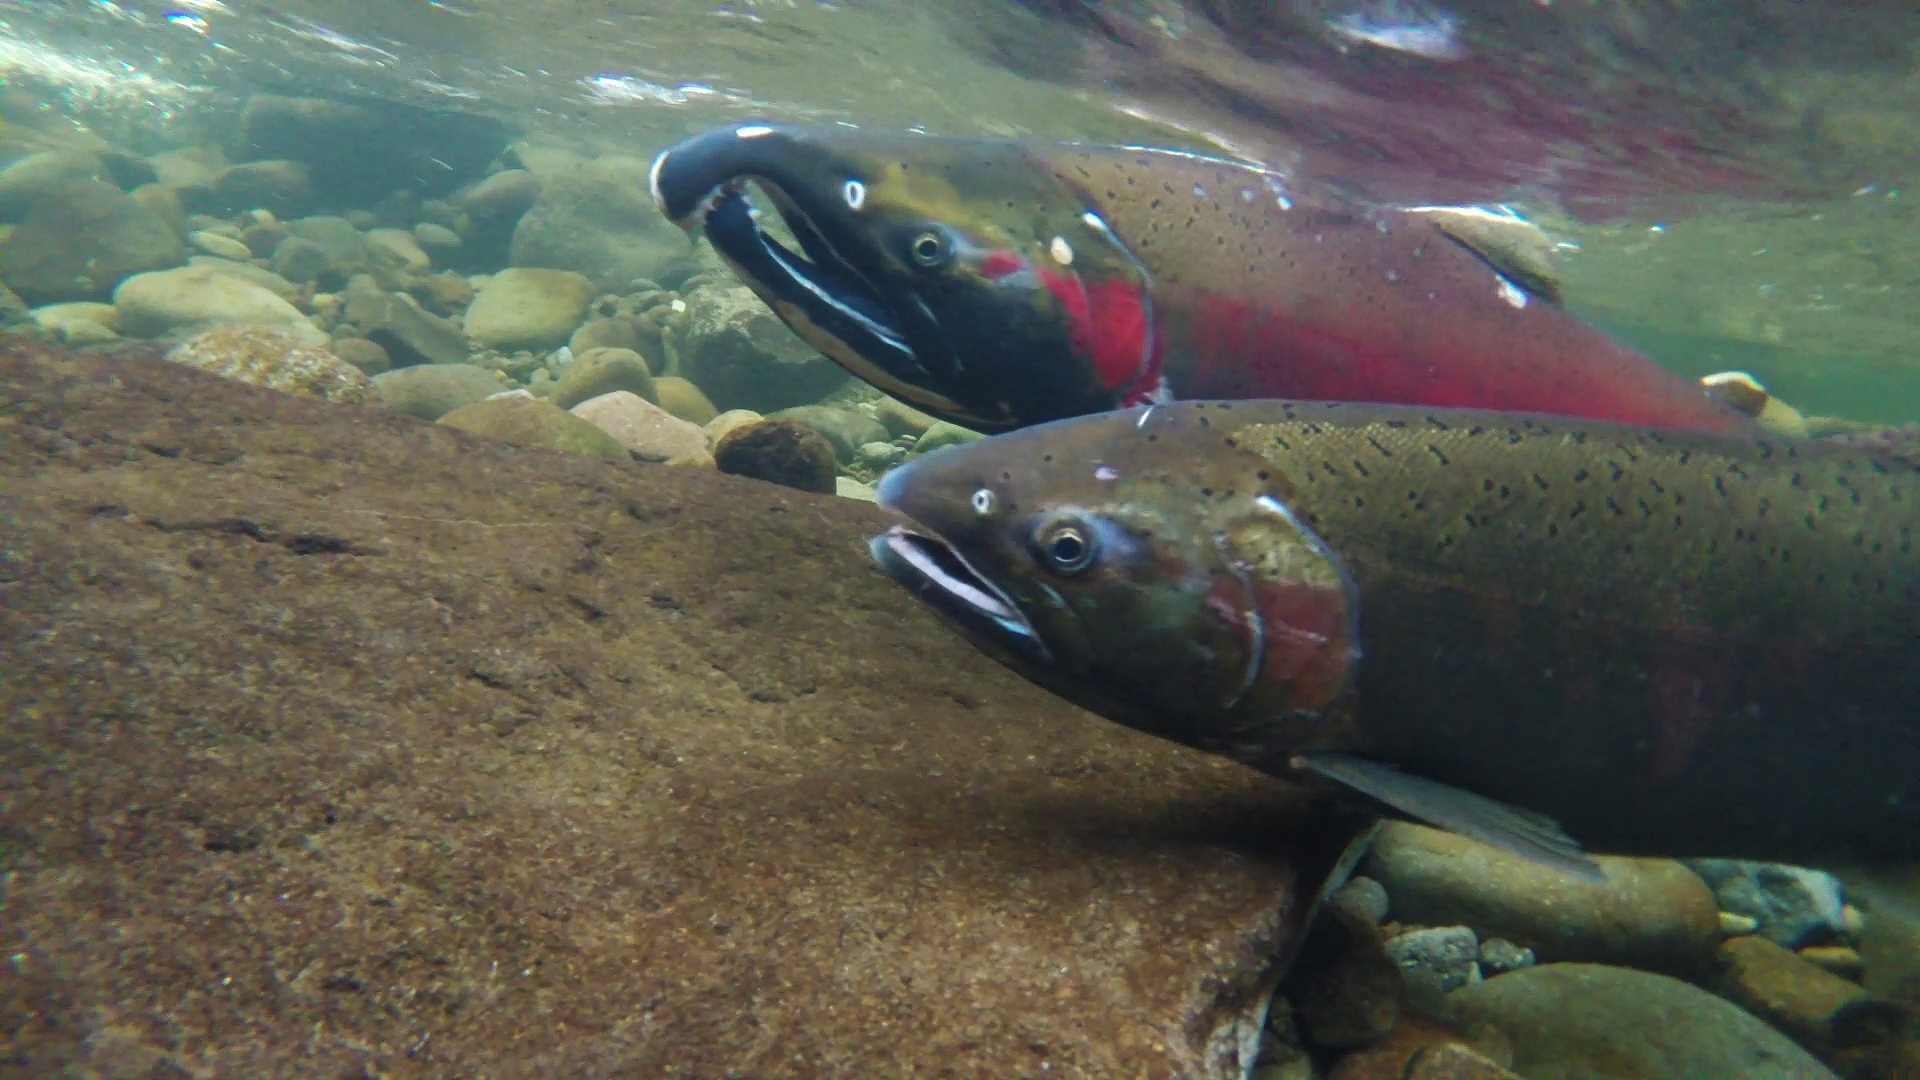 County of Marin Sued for Failing to Protect Critically Endangered Salmon Species